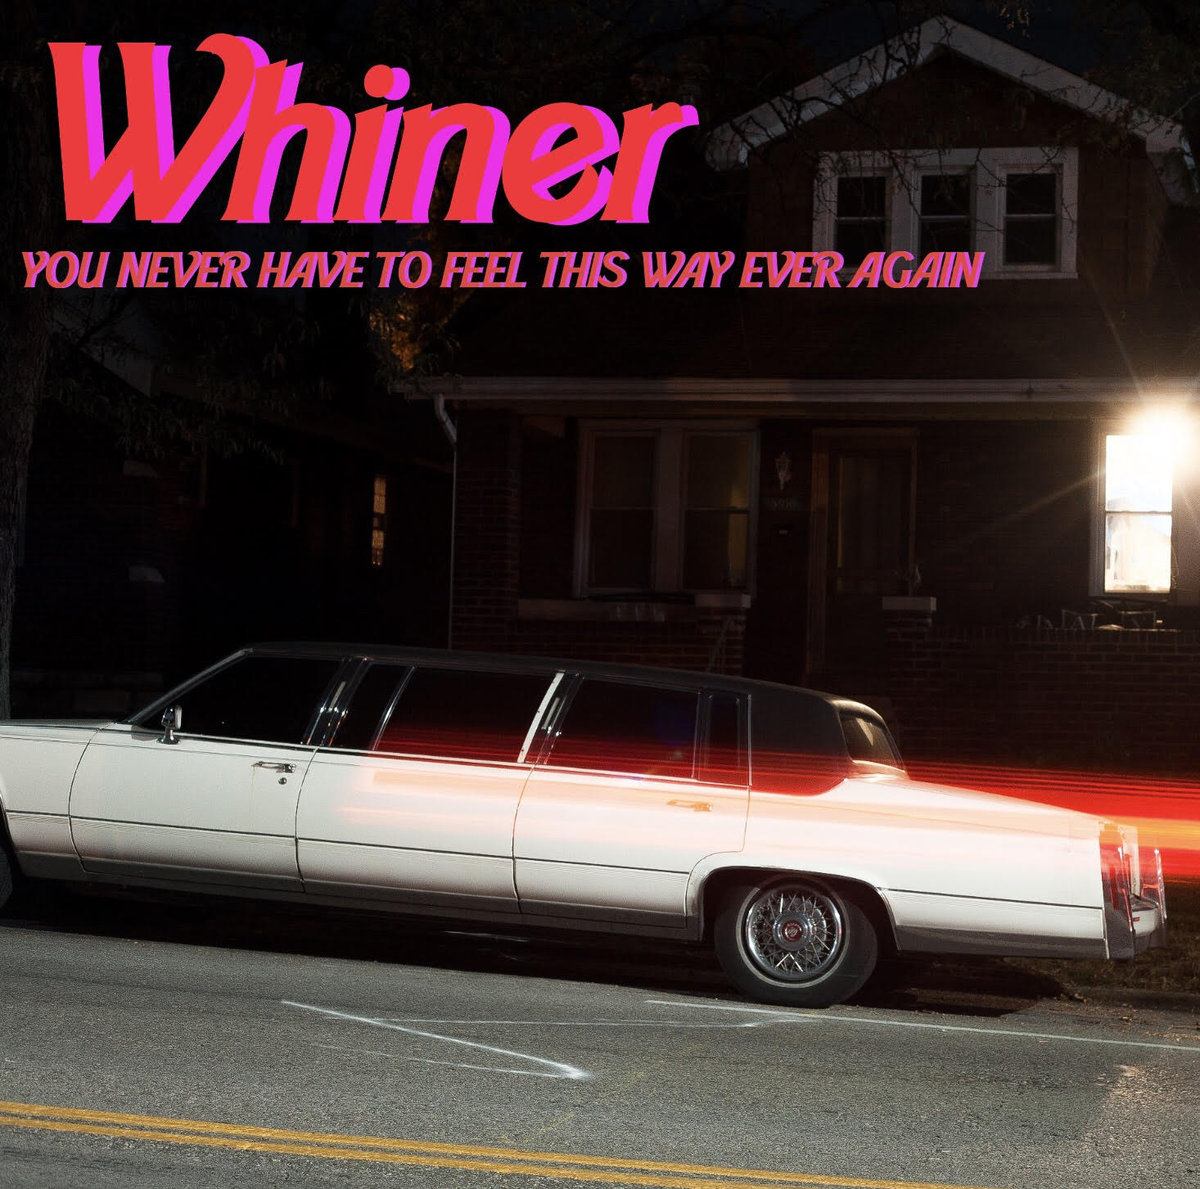 Whiner cover